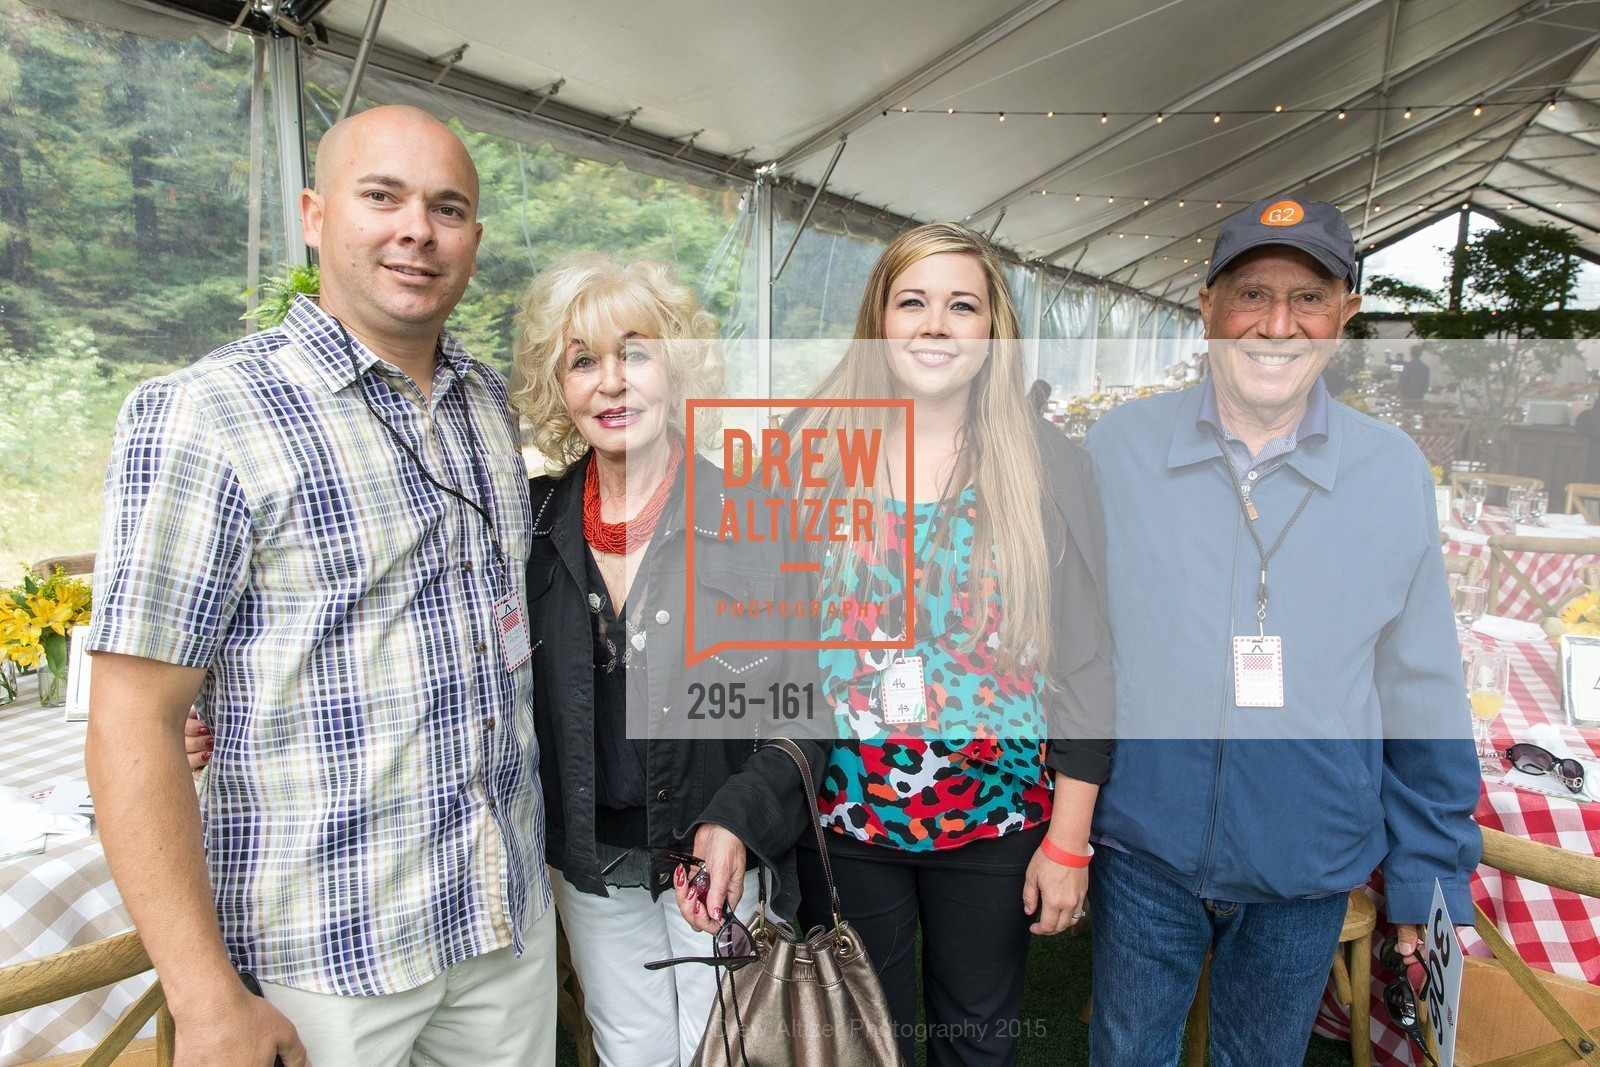 Chris Romero, Lea Orwitz, Amanda Ramiro, Allen Horowitz, THE BIG PICNIC Kicking off  2015 Stern Grove Season, Stern Grove. 2750 19th Avenue, June 14th, 2015,Drew Altizer, Drew Altizer Photography, full-service agency, private events, San Francisco photographer, photographer california